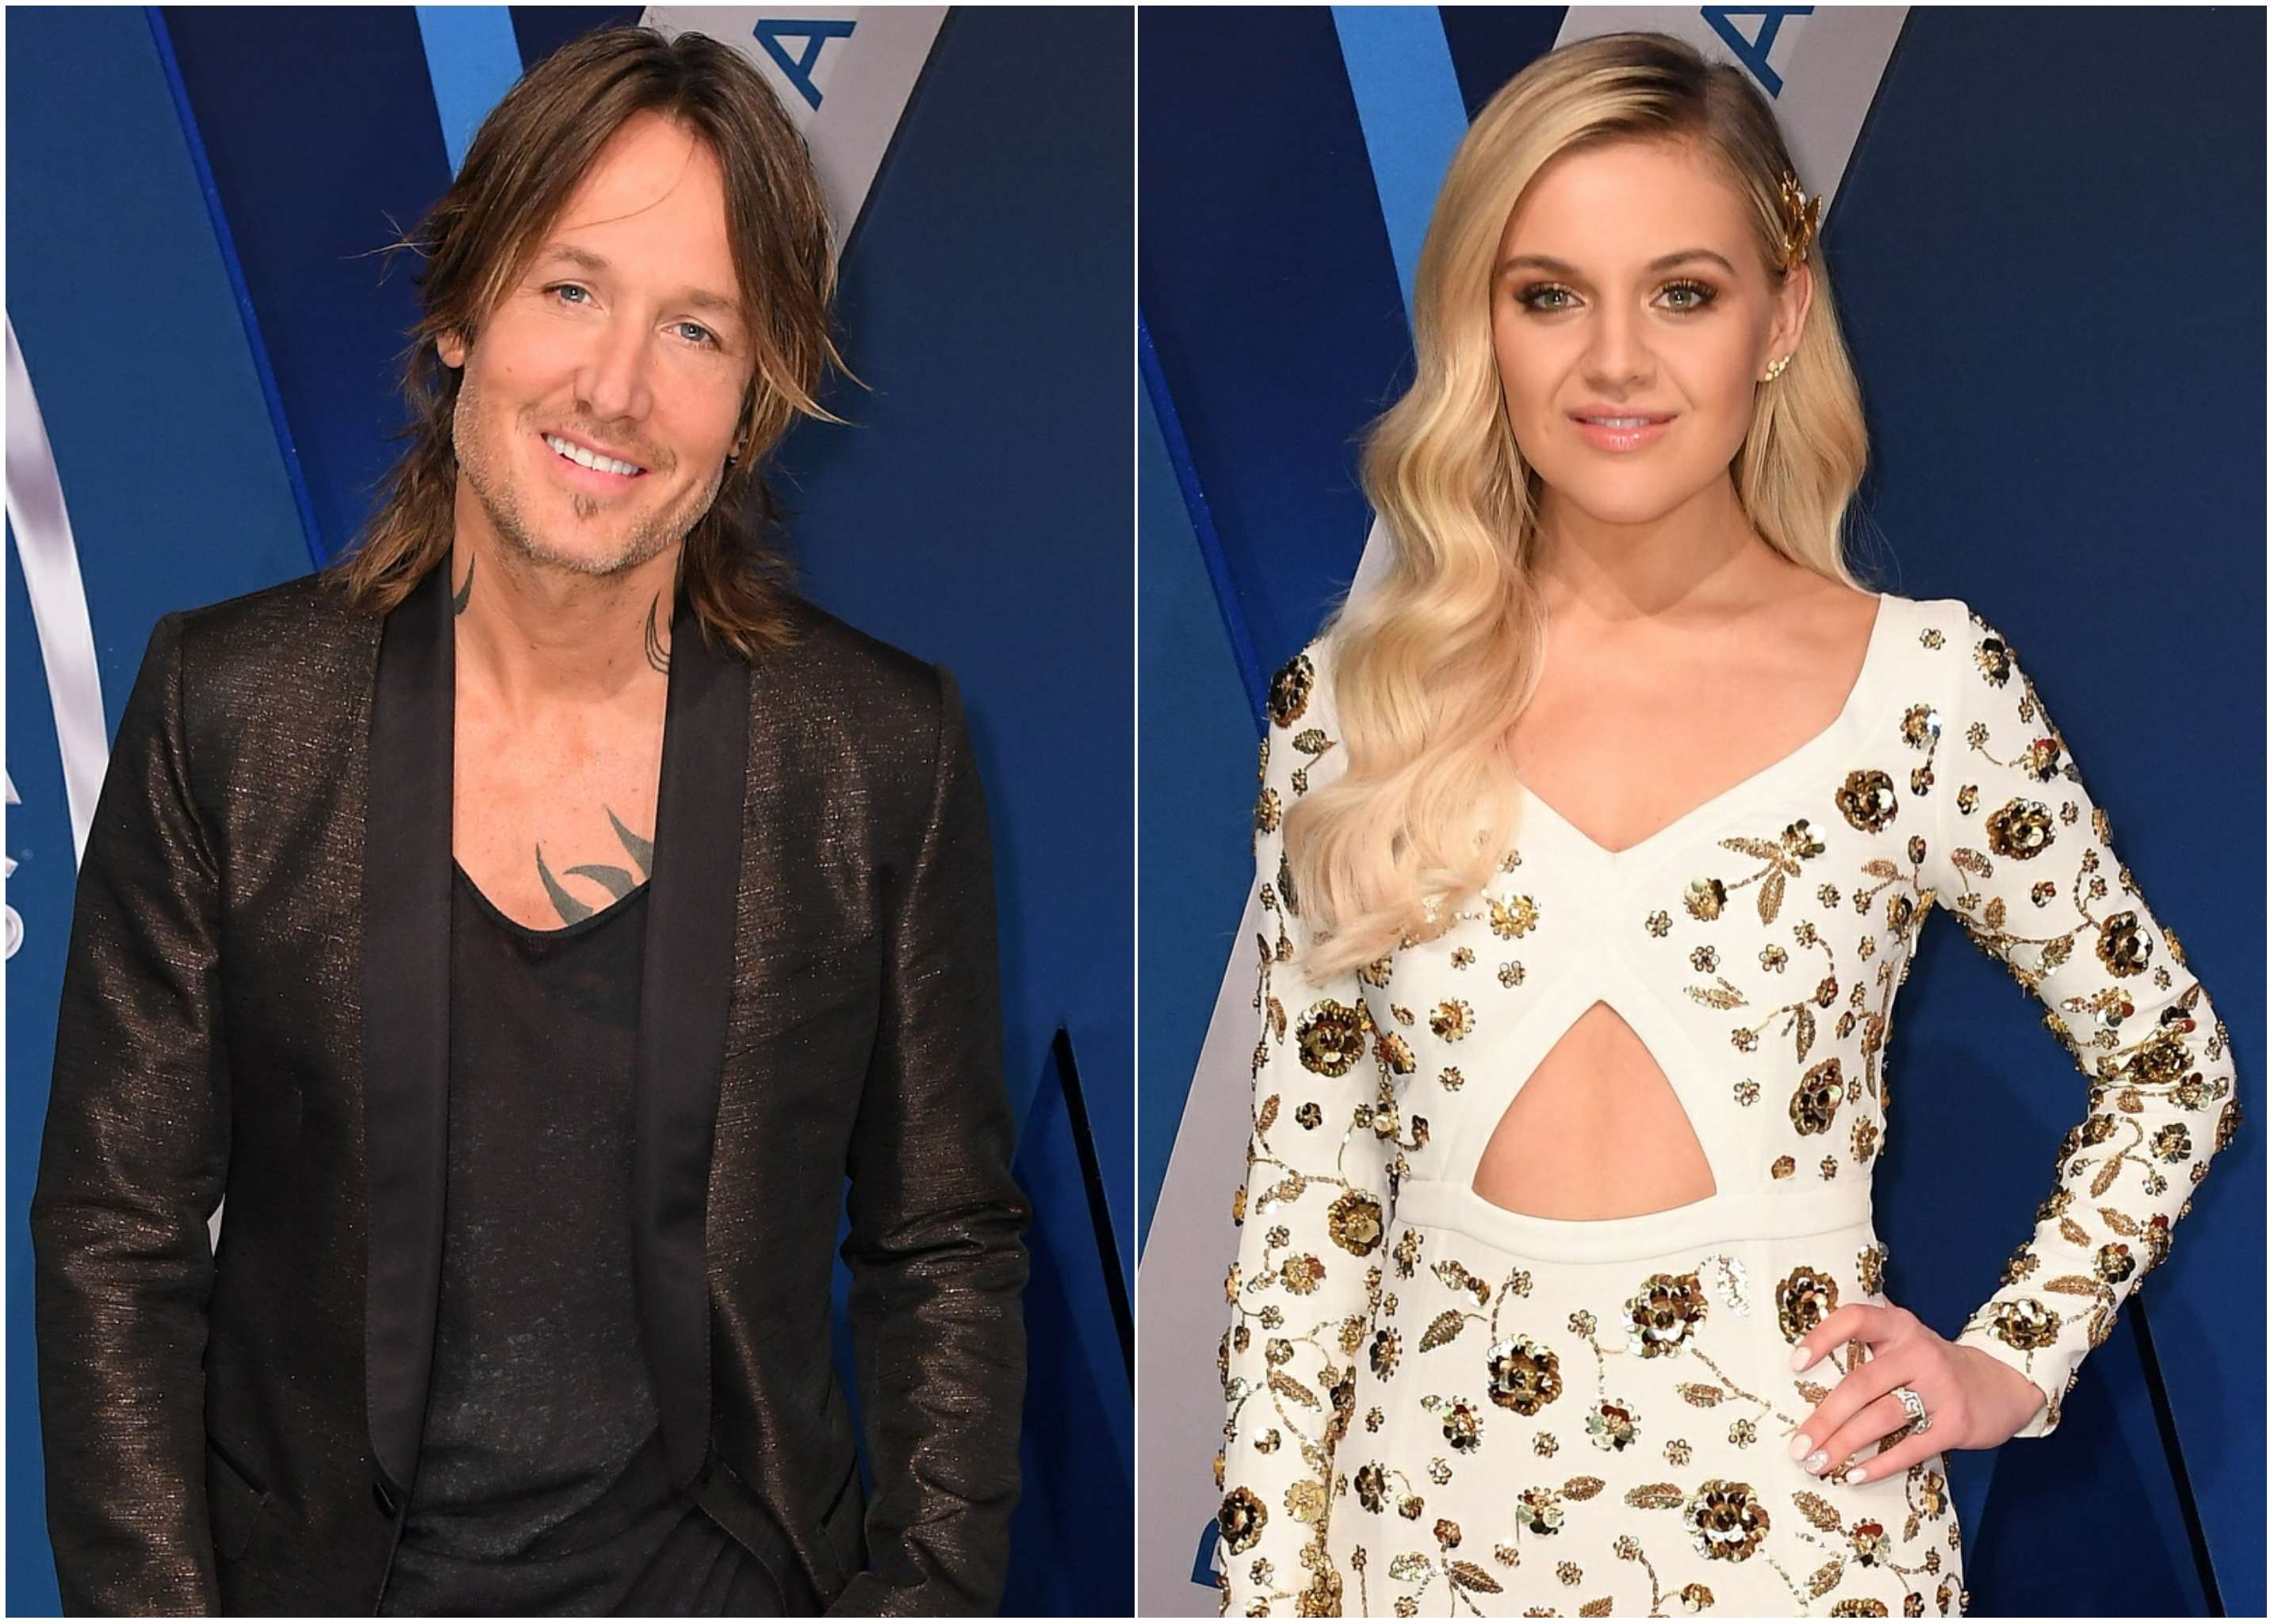 Keith Urban Pinpoints Why He Chose Kelsea Ballerini for the Graffiti U Tour